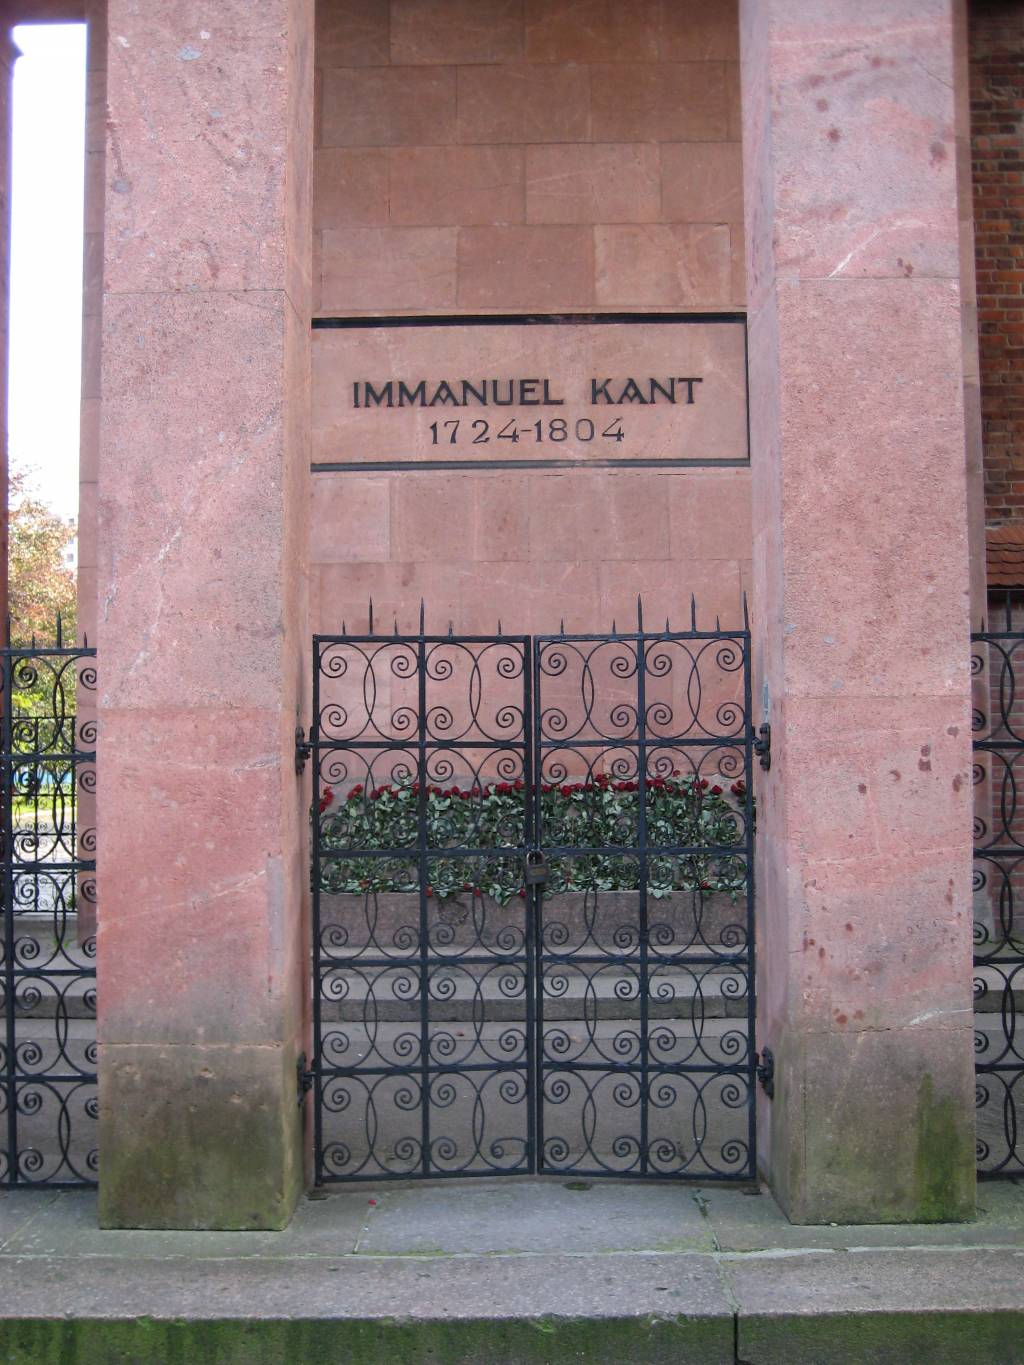 kant s dynamically sublime writework english immanuel kant tomb in koenigsberg 1056109110891089108210801081 105210861075108010831072 104810841084107210851091108010831072 10501072108510901072 1074 105010721083108010851080108510751088107210761077 10501105108510801075108910731088107710751077